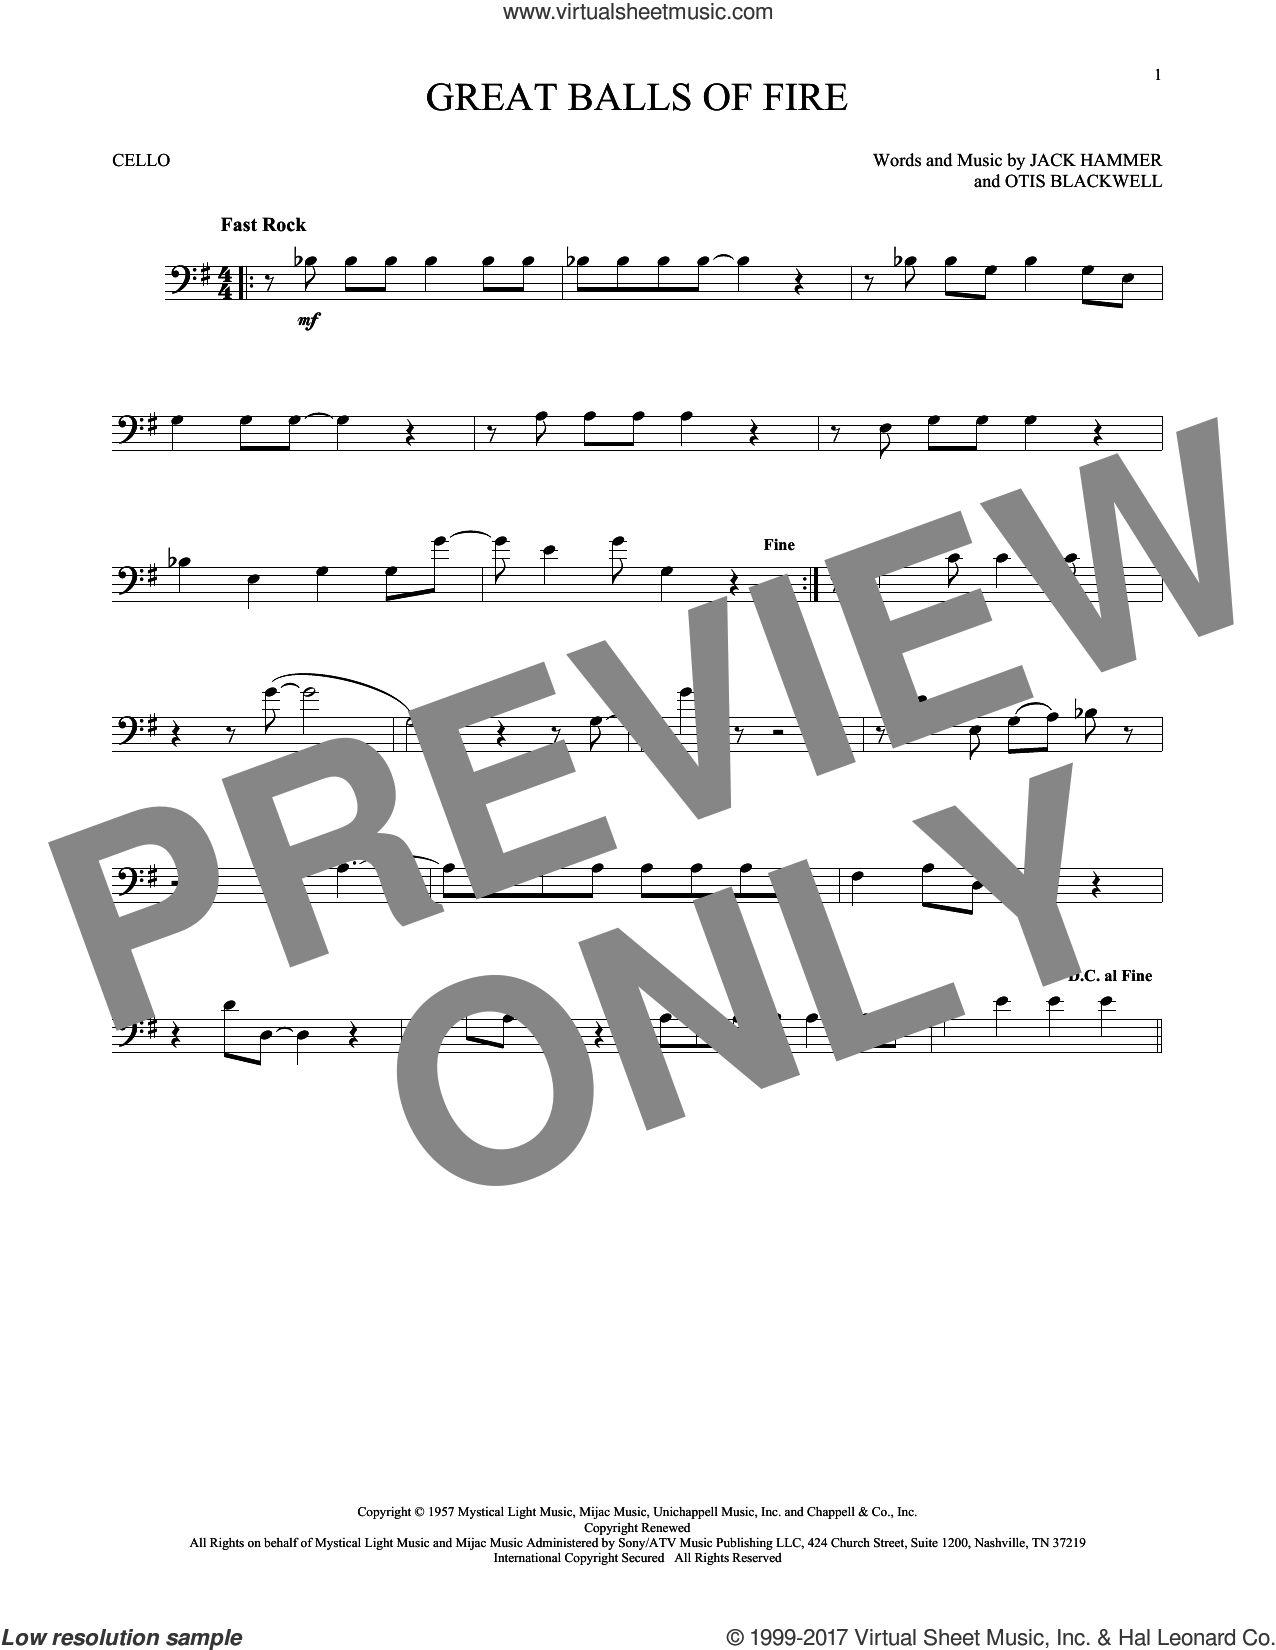 Great Balls Of Fire sheet music for cello solo by Jerry Lee Lewis, Jack Hammer and Otis Blackwell, intermediate skill level